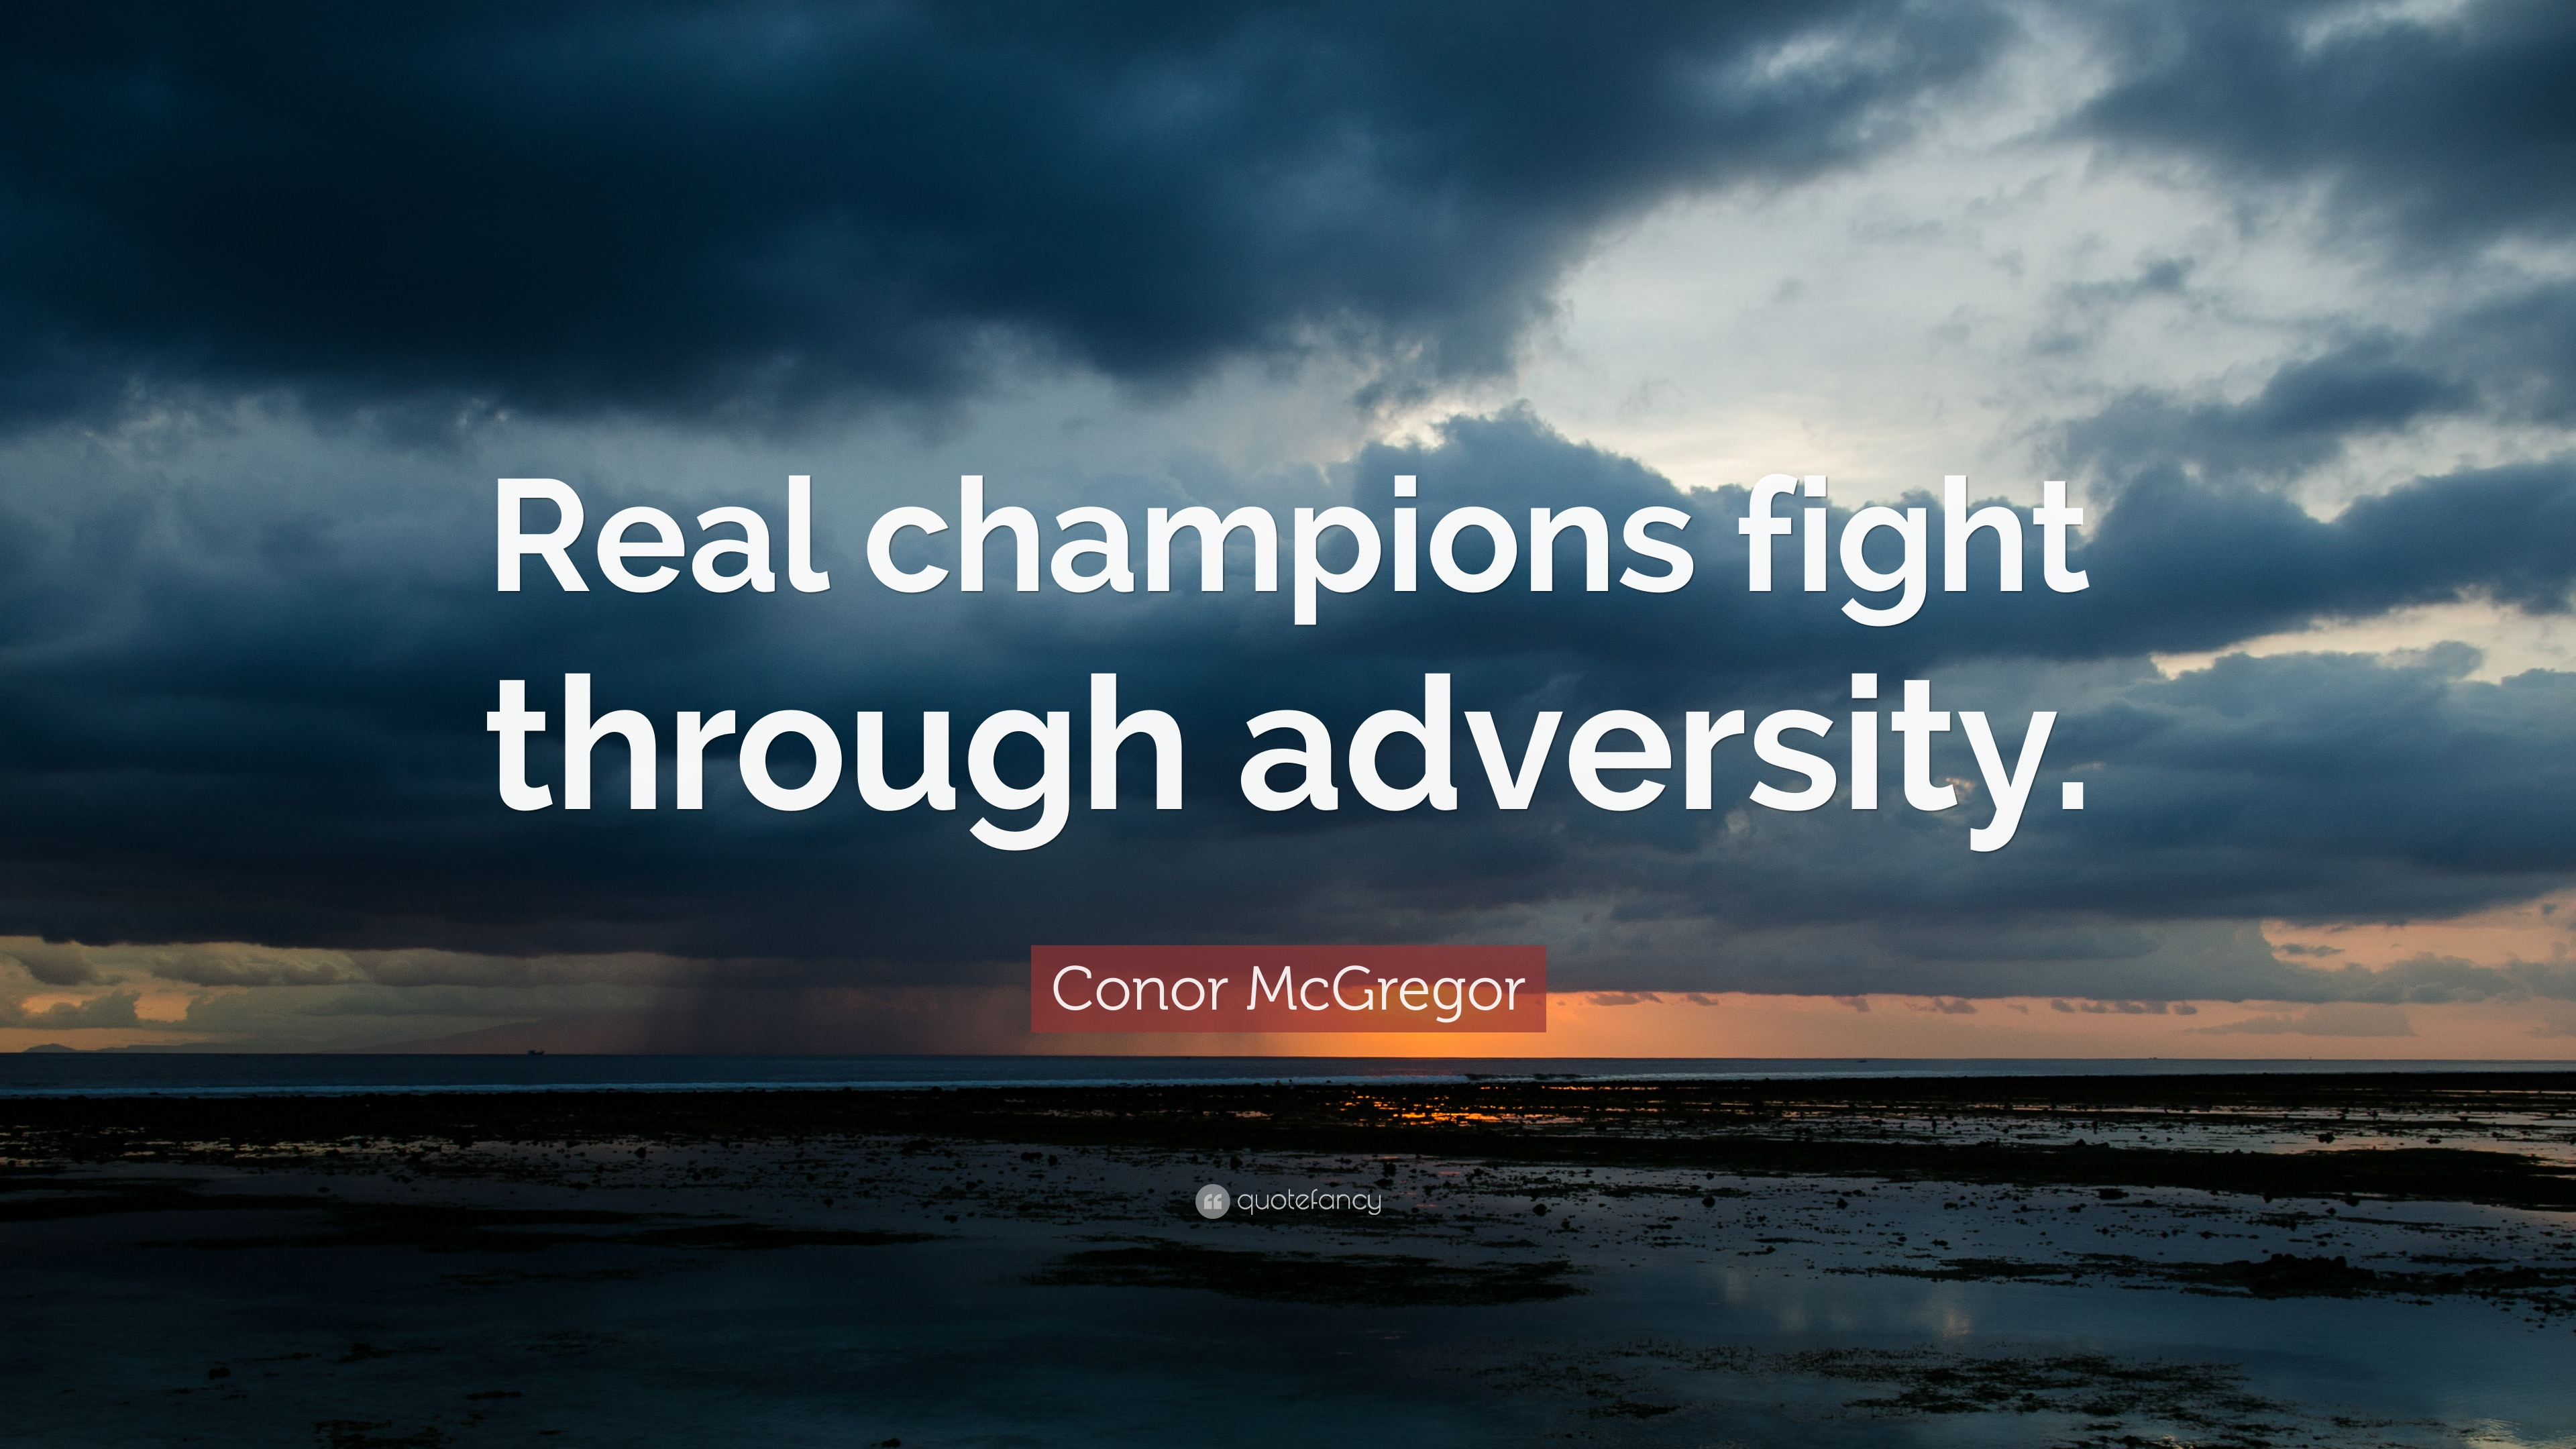 conor mcgregor quote real champions fight through adversity 17